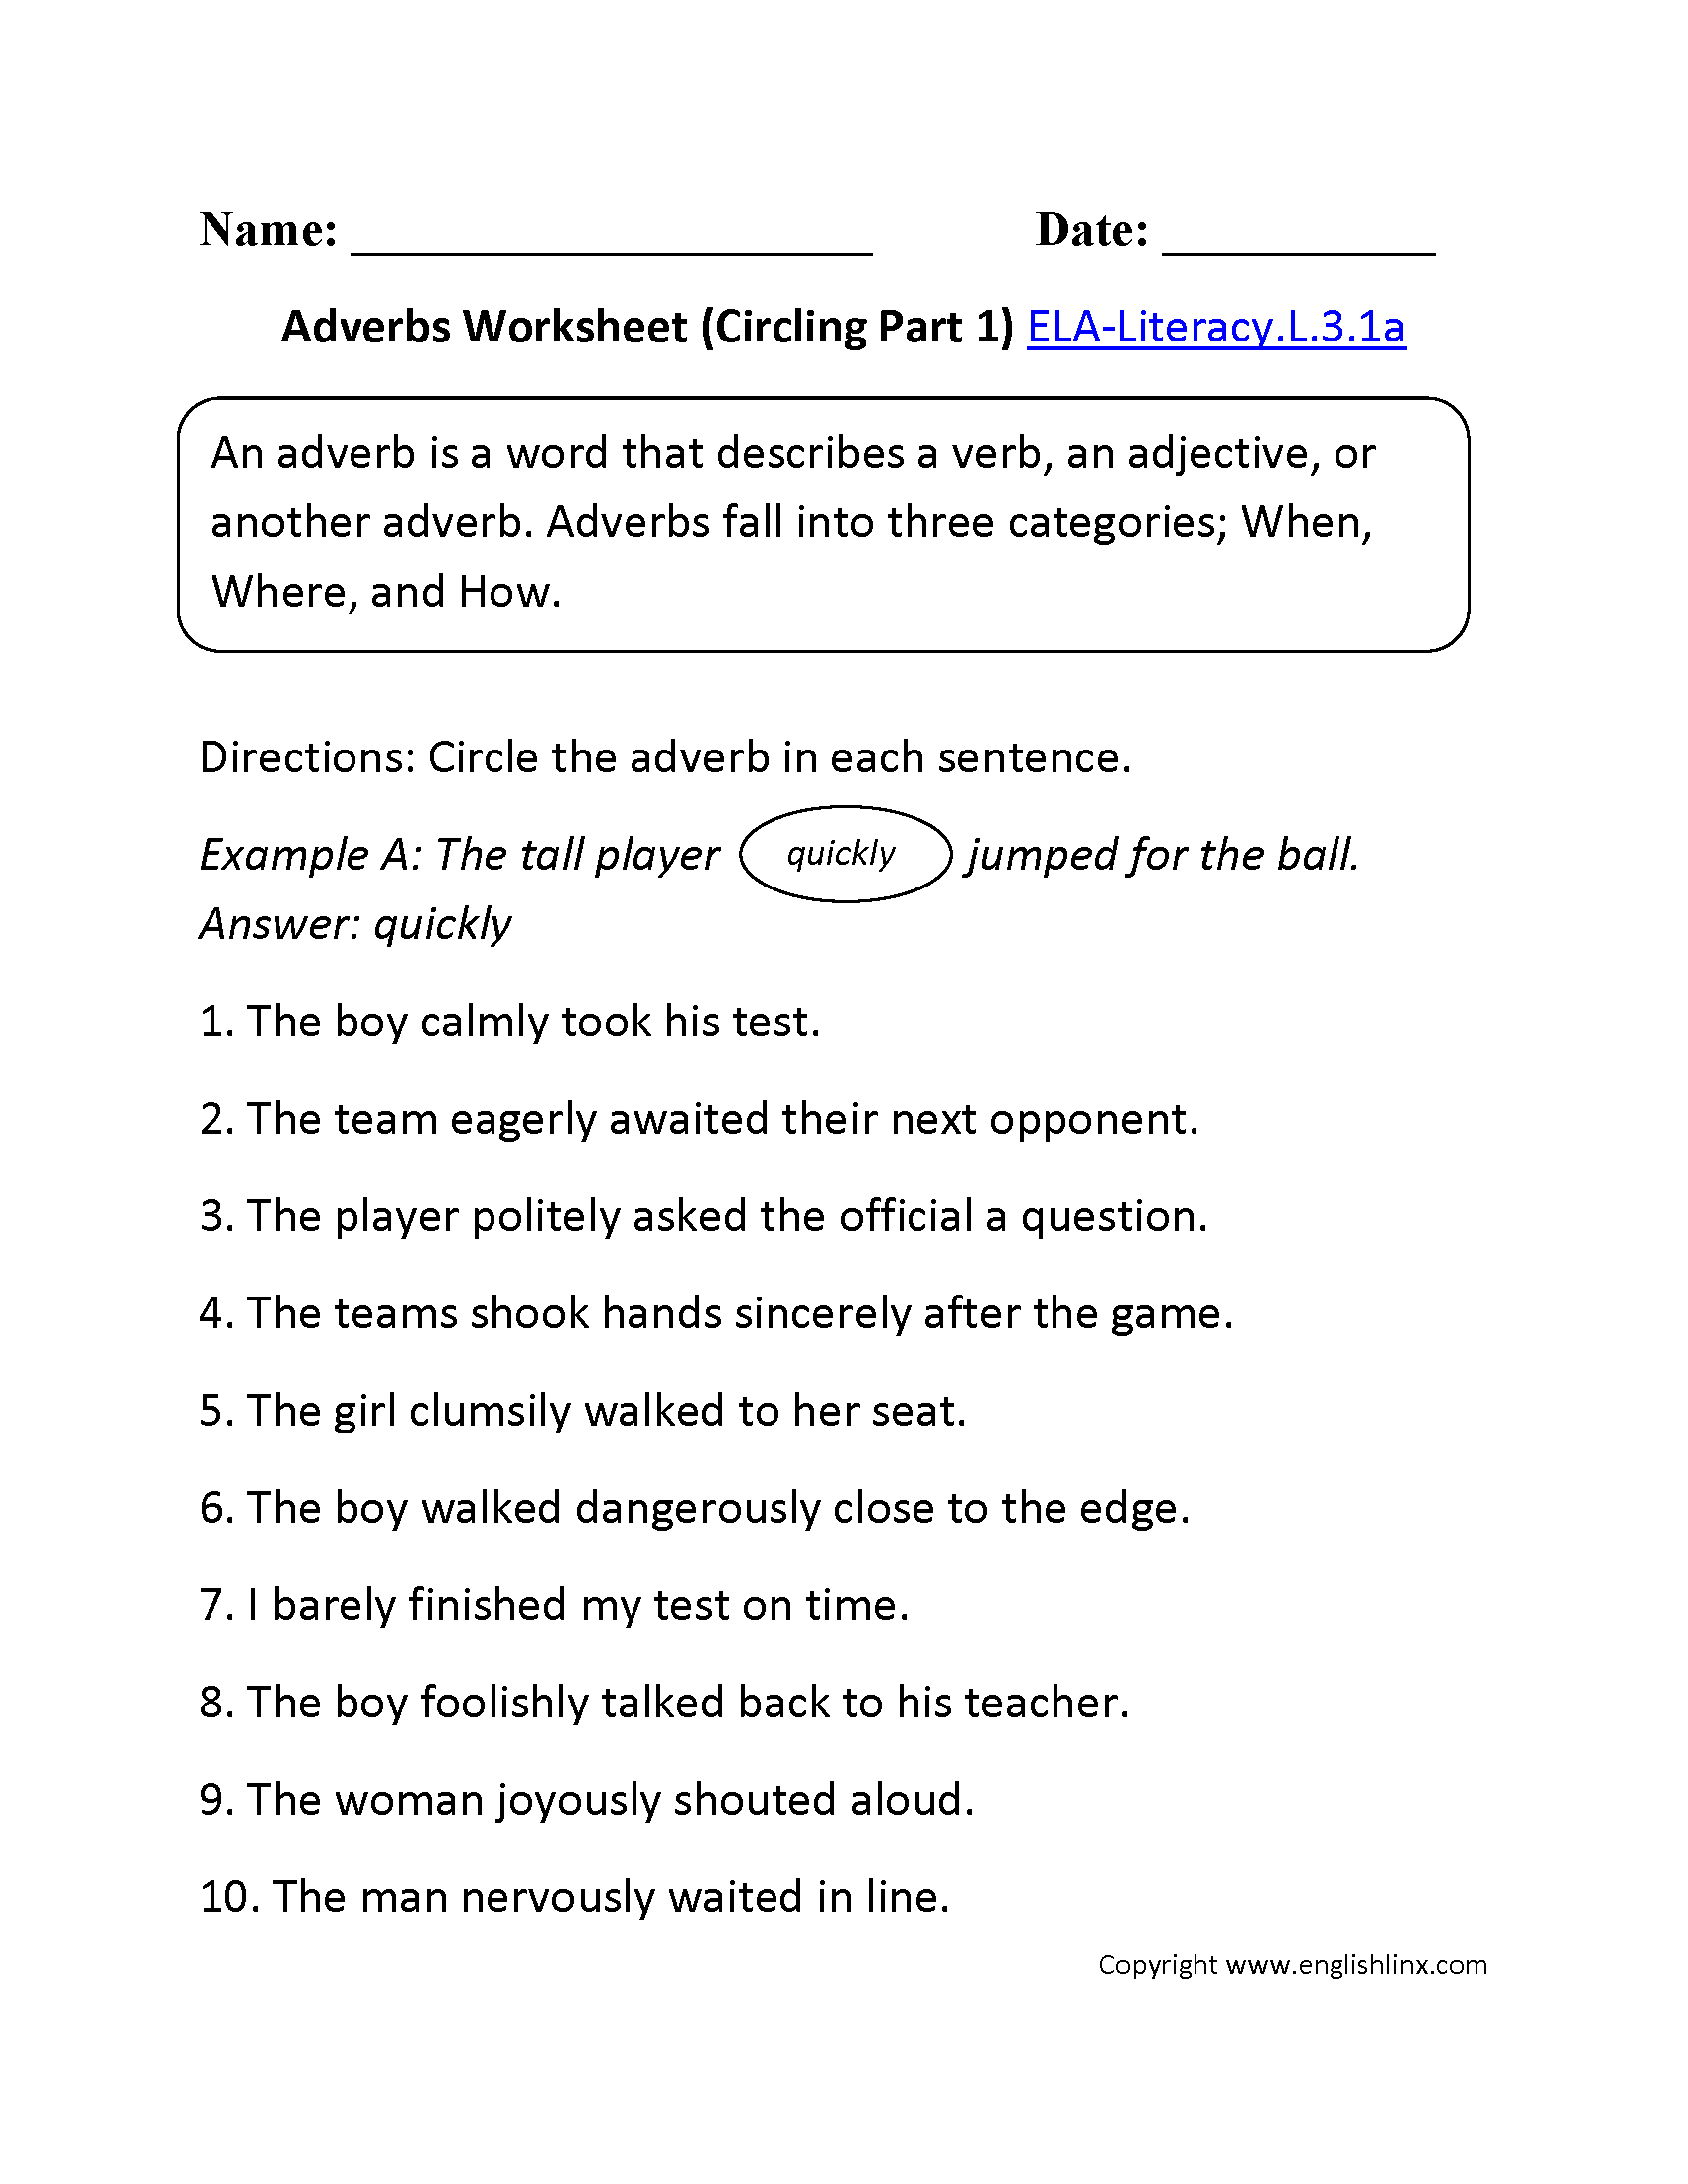 Worksheets Adverbs Worksheet adverbs worksheet 1 ela literacy l 3 1a language worksheet